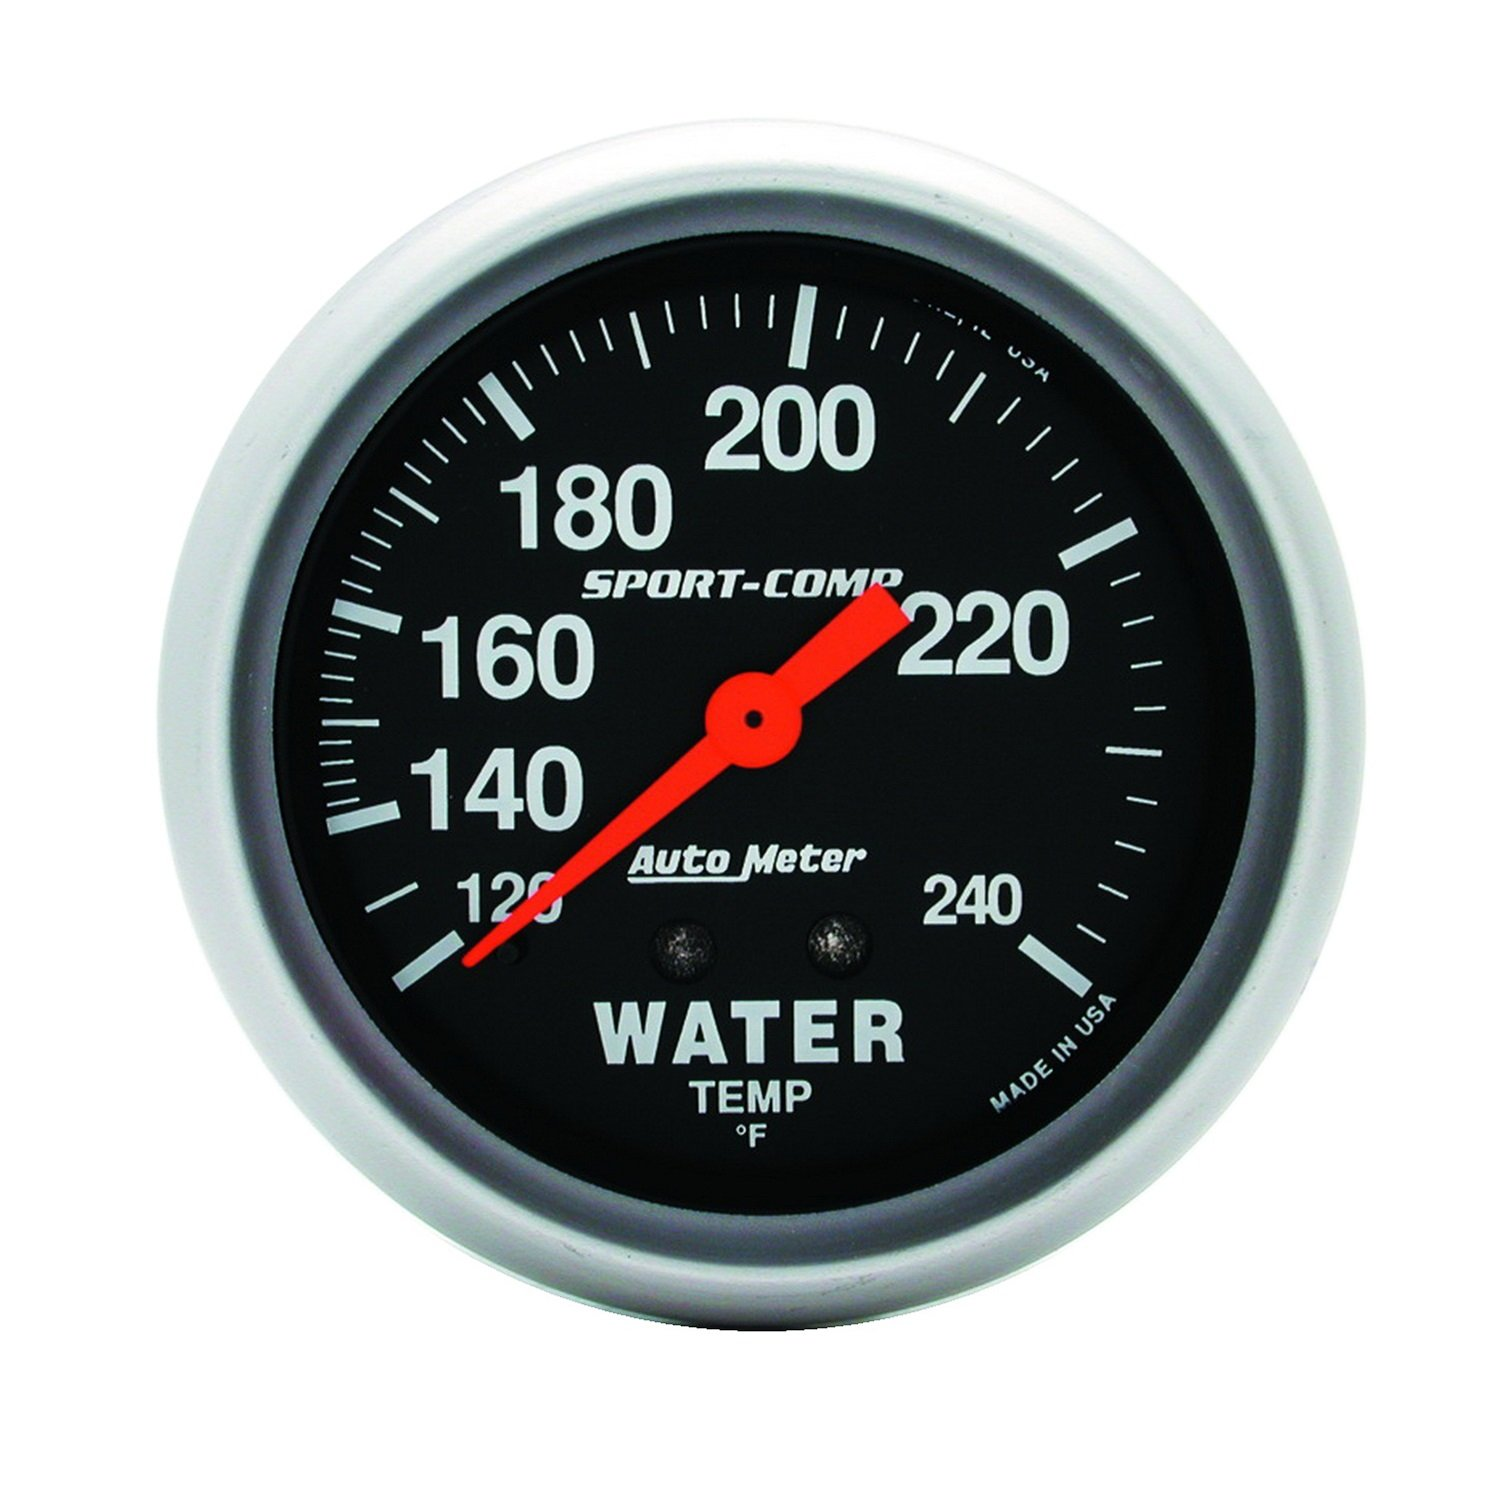 Auto Meter 3432 2-5/8' Mechanical Water Temperature Gauge with 6' Tubing